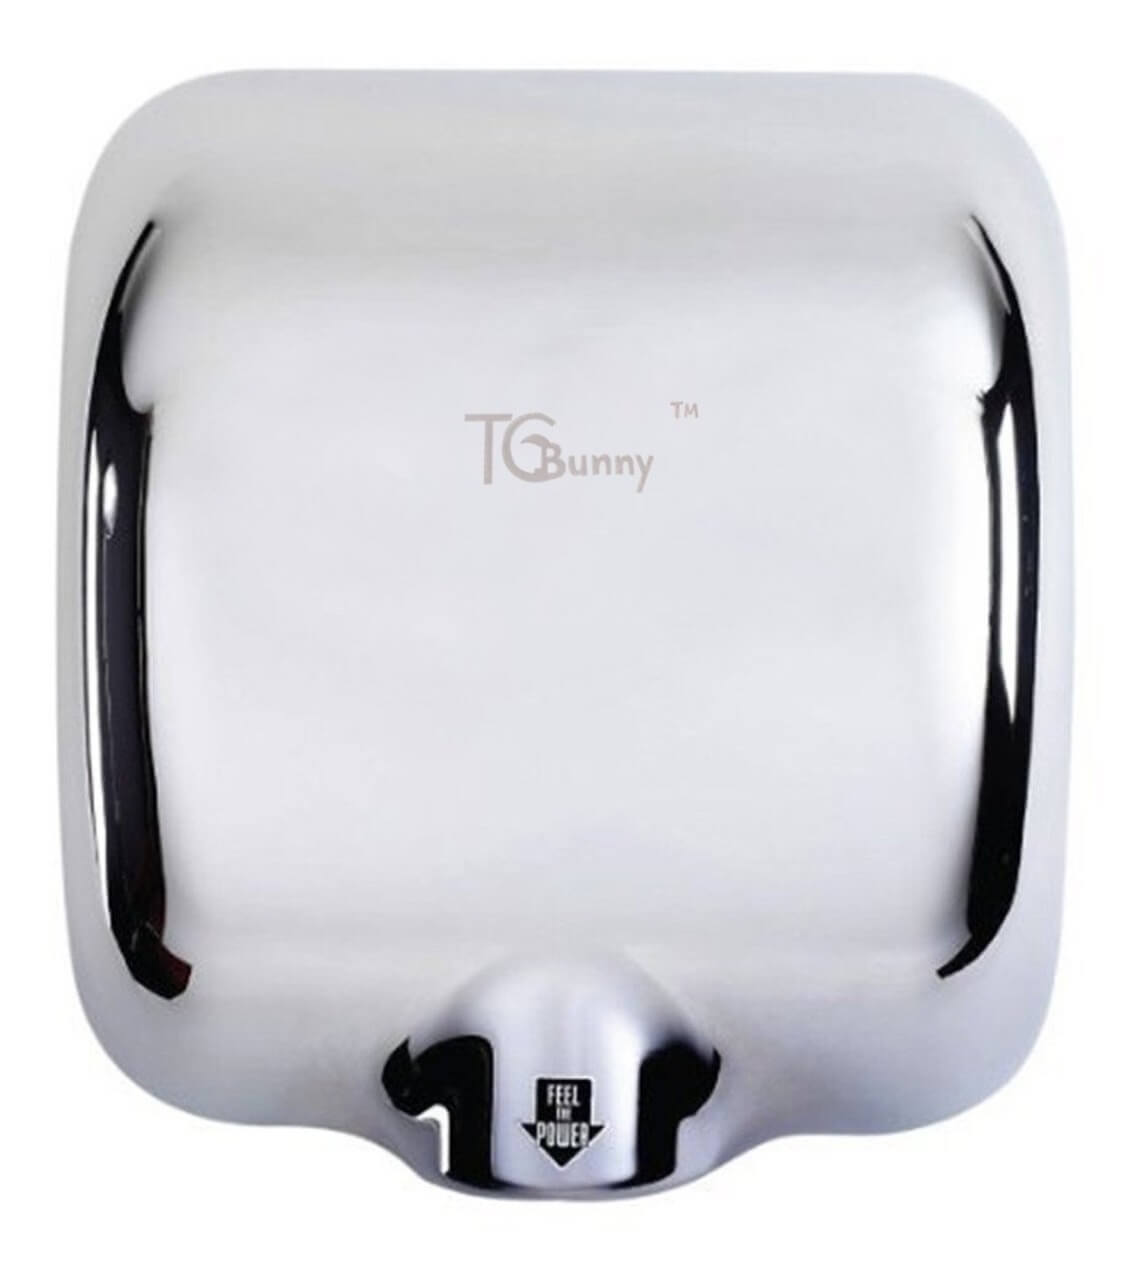 TCBunny (1 Pack) Heavy Duty 1800 Watts High Speed 90m/s Automatic Hot Commercial Hand Dryer